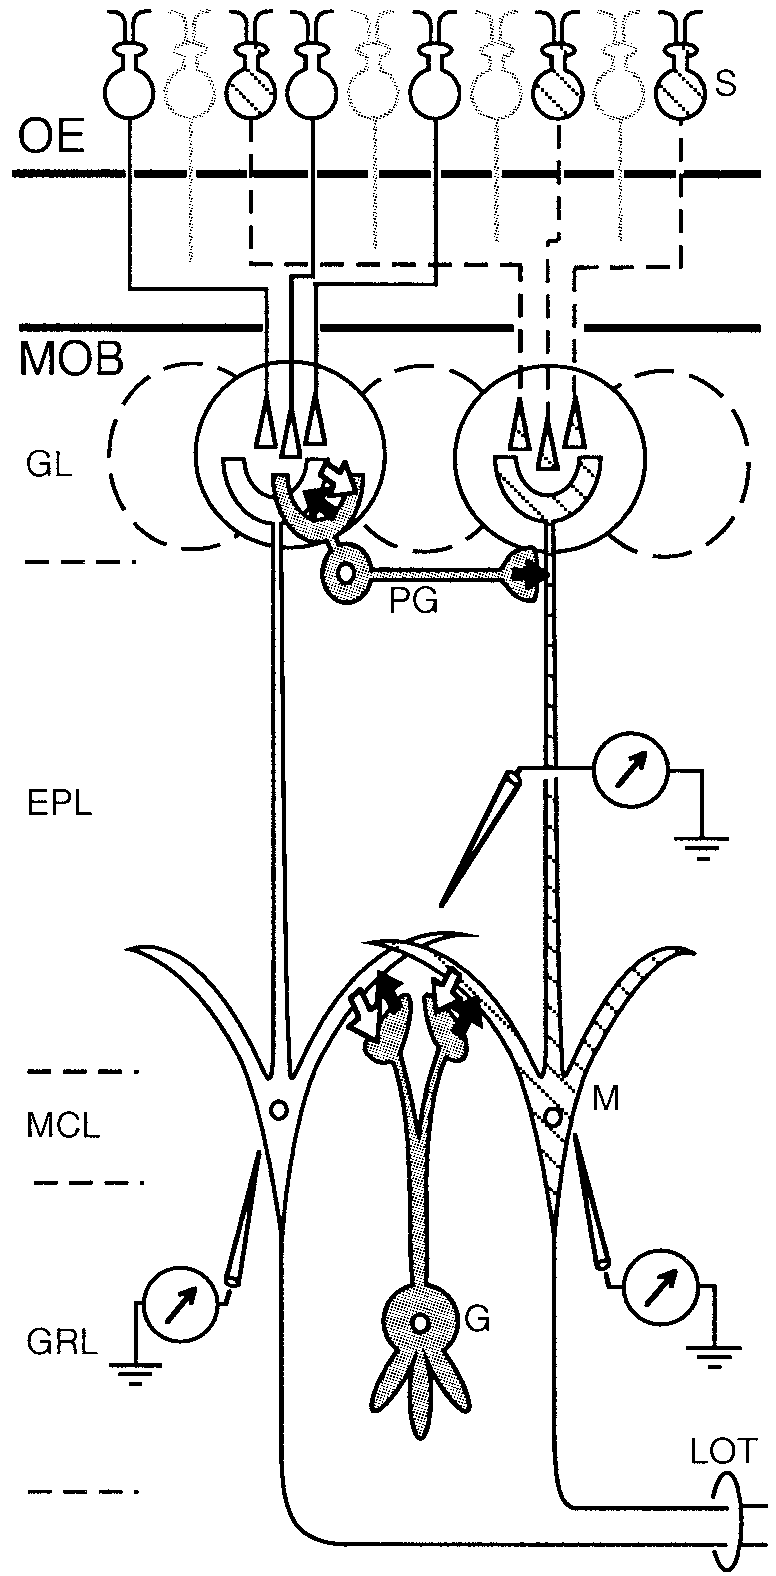 hight resolution of schematic diagram illustrating the basic neuronal circuit of the main olfactory bulb and the arrangement of